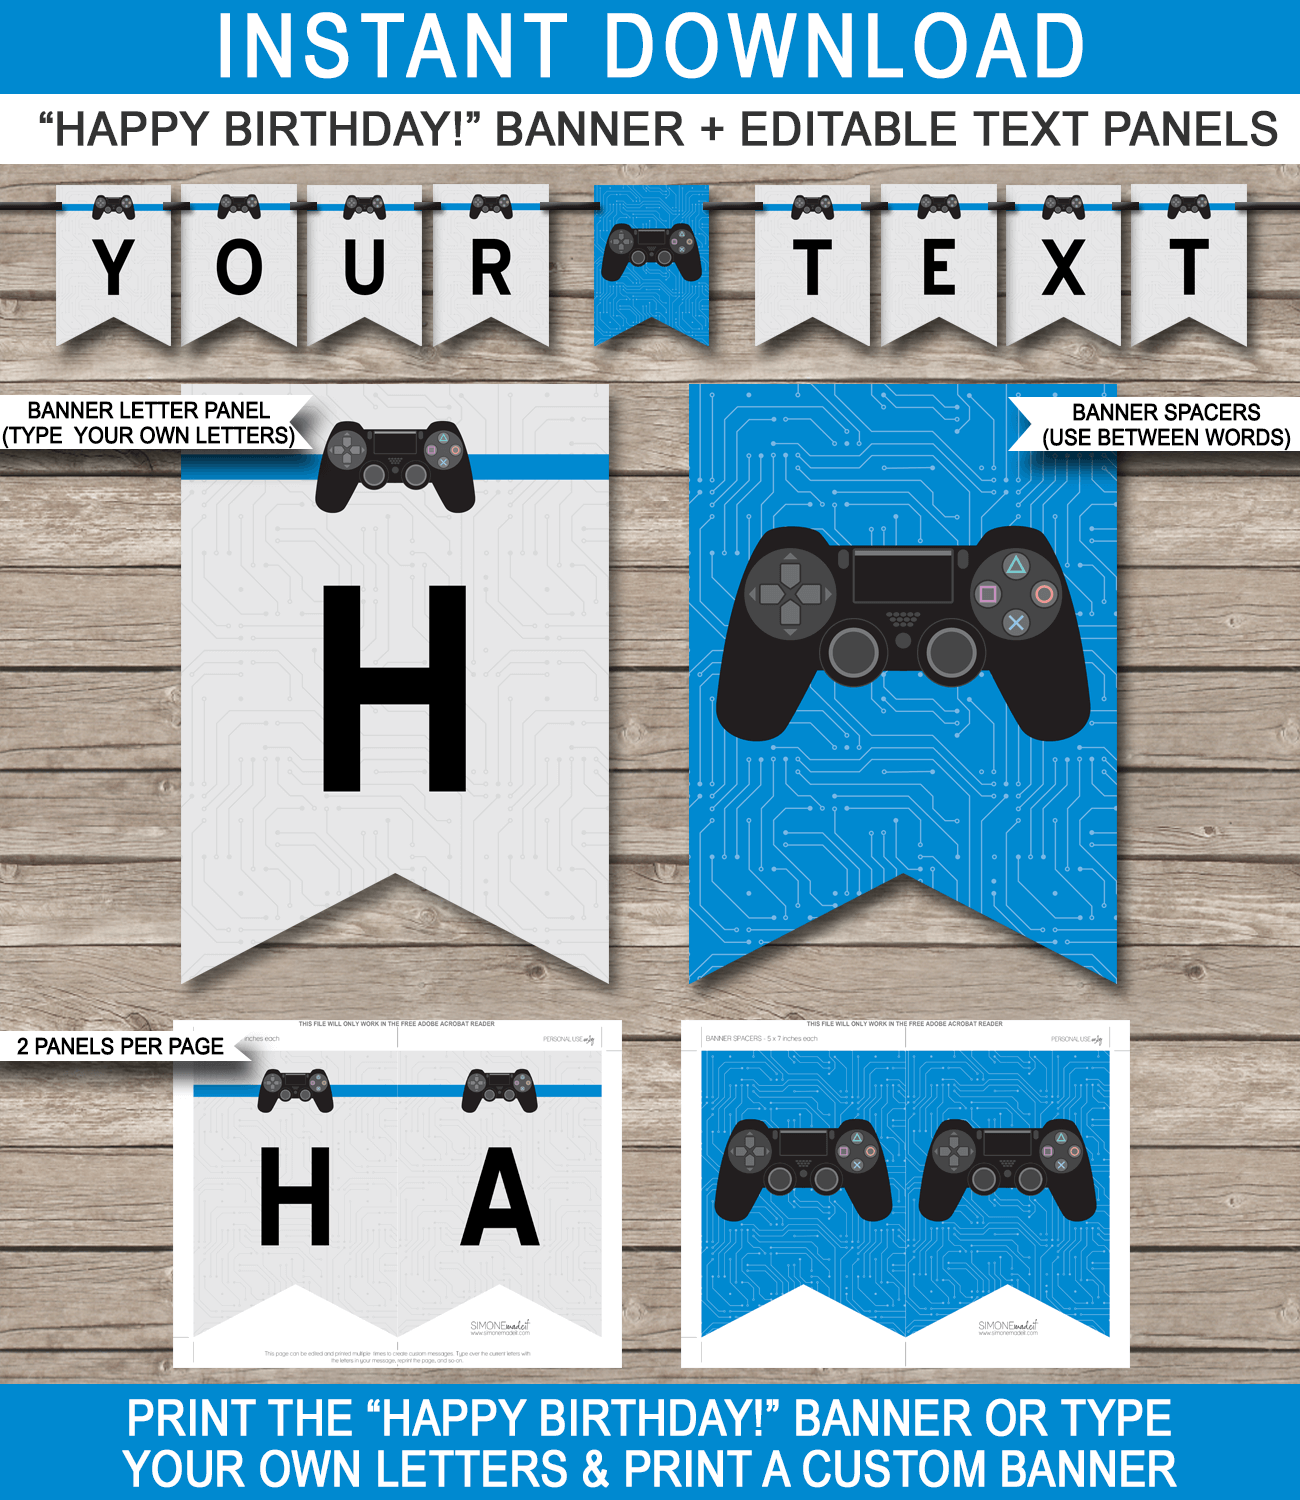 Playstation Birthday Party Pennant Banner Template Blue Birthday Party Pennants Pennant Banner Template Playstation Party